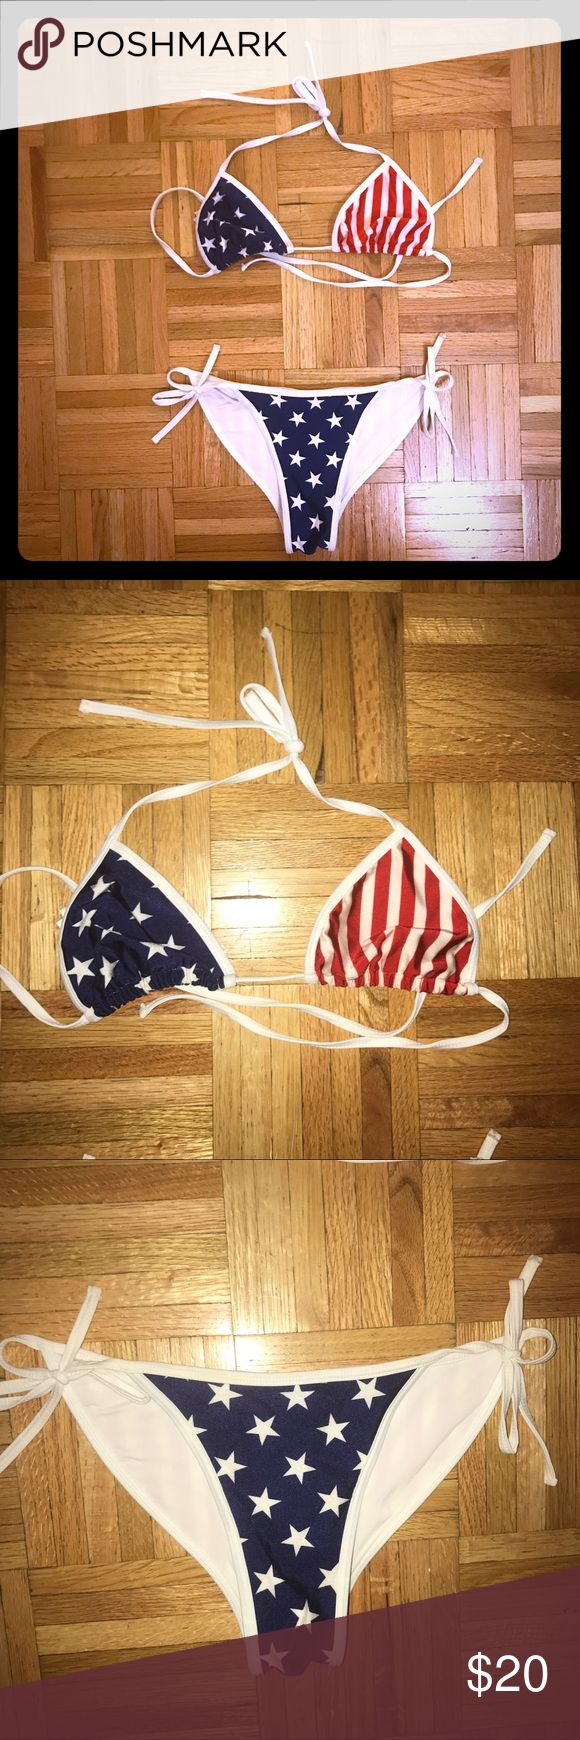 American Flag Bikini - American Apparel NWOT Sexy USA bikini - perfect for the Fourth of July! Never worn - NWT. Unlined. Top is size M and bottom is size L - runs small. American Apparel Swim Bikinis